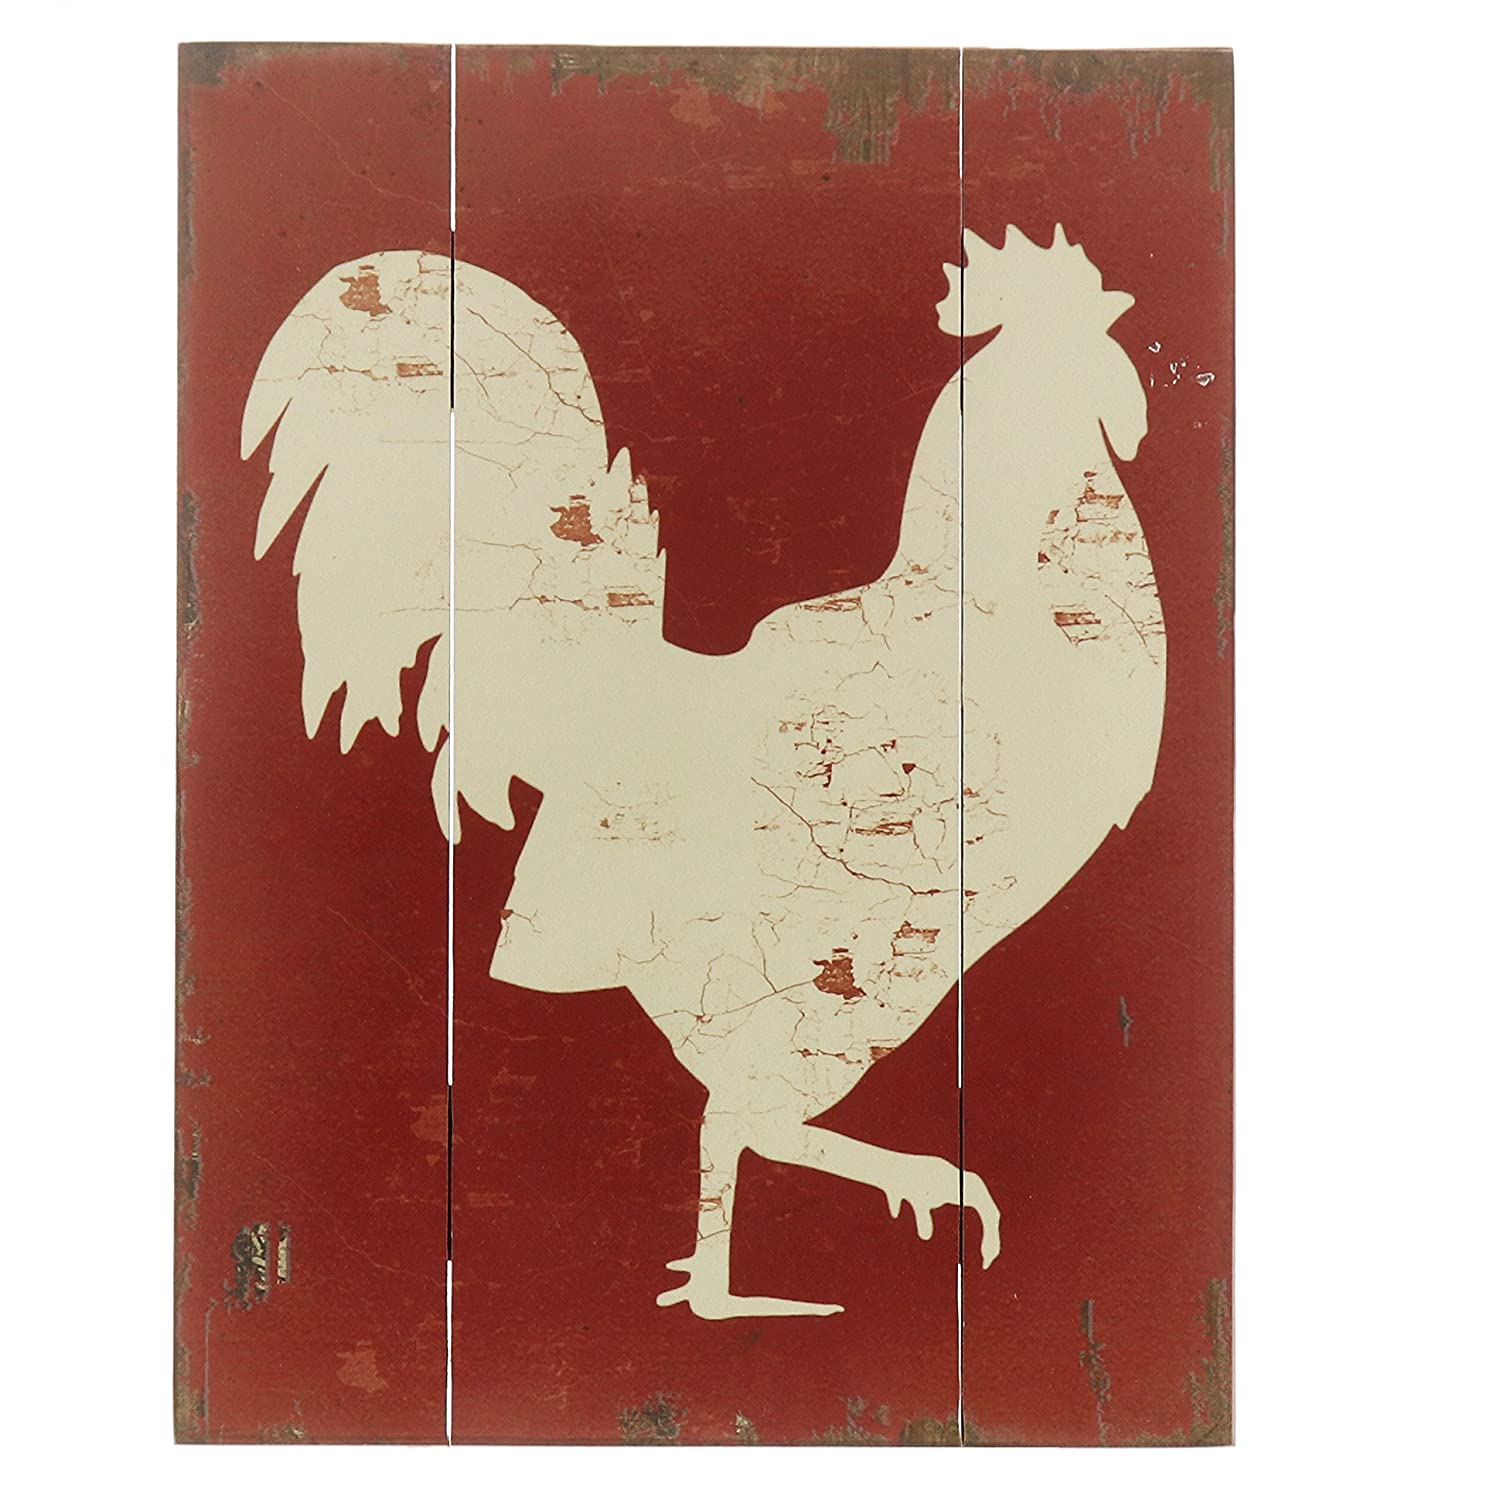 "Barnyard Designs White Rooster Cockerel Retro Vintage Wood Plaque Bar Sign Country Home Decor 15.75"" x 11.75"""